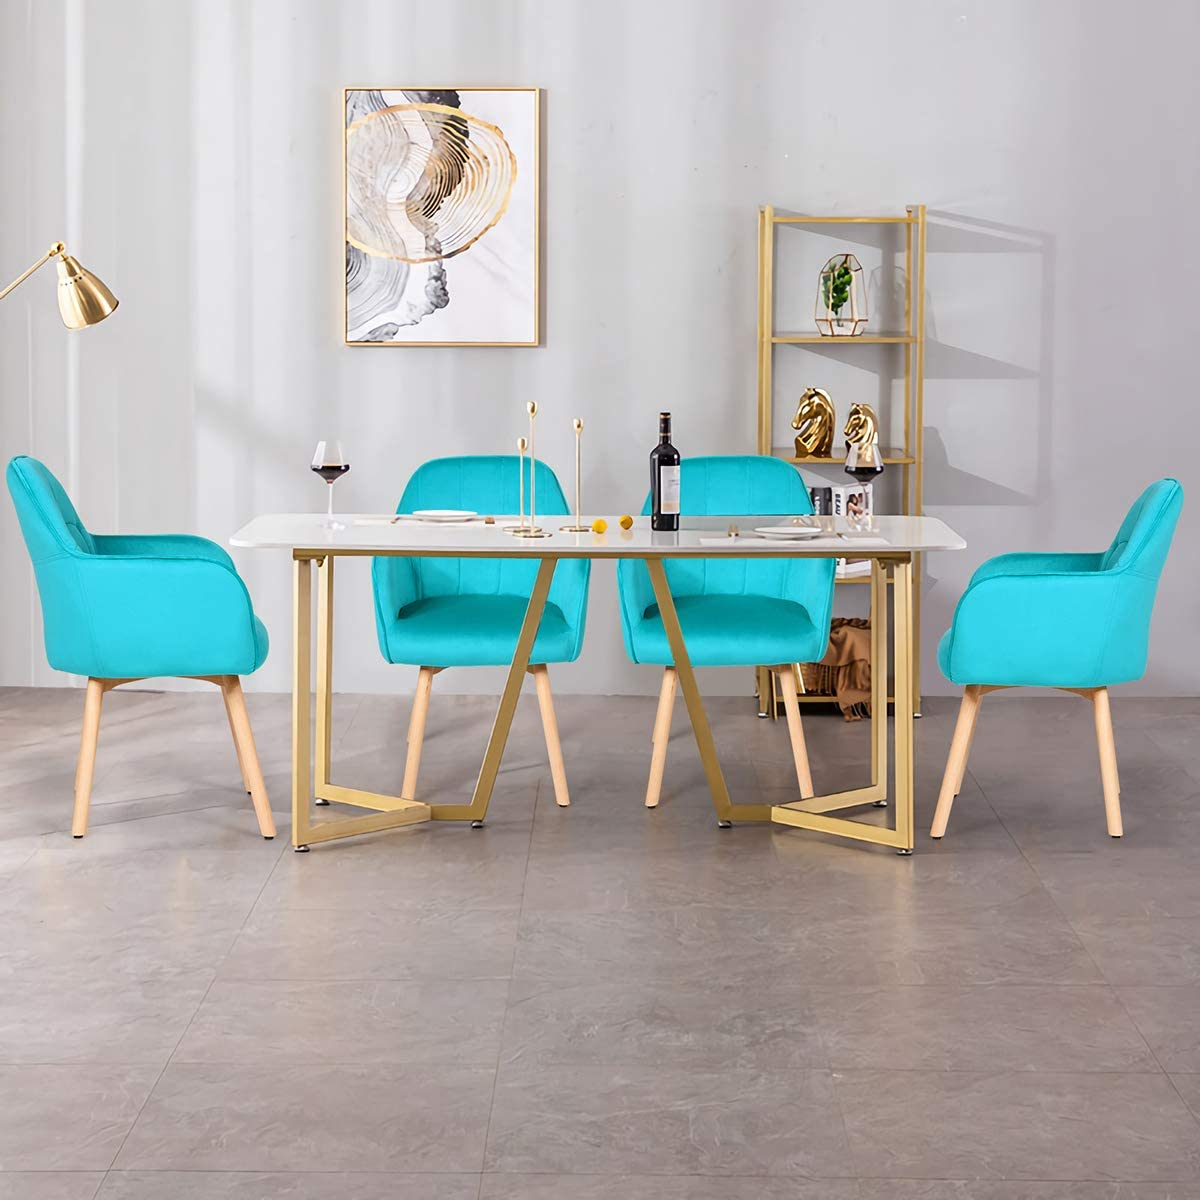 Bedroom Non-Slip Foot Pads Comfortable Leisure Accent Chair for Living Room Giantex Modern Velvet Living Dining Room Accent Arm Chairs Set of 2 2, Turquoise Cute Chairs w//Solid Wood